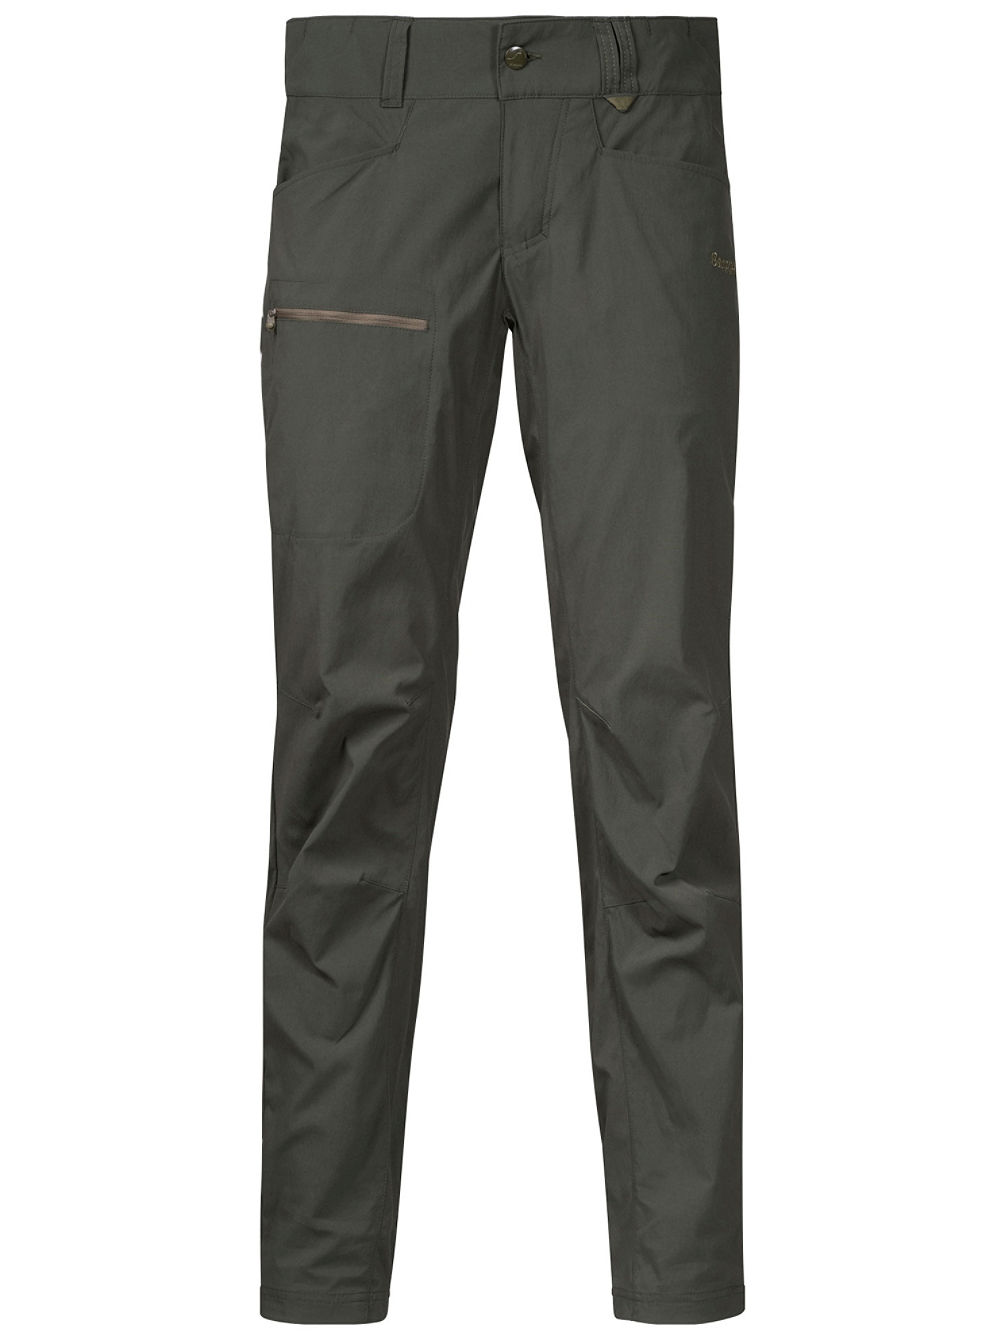 Utne Outdoor Pants